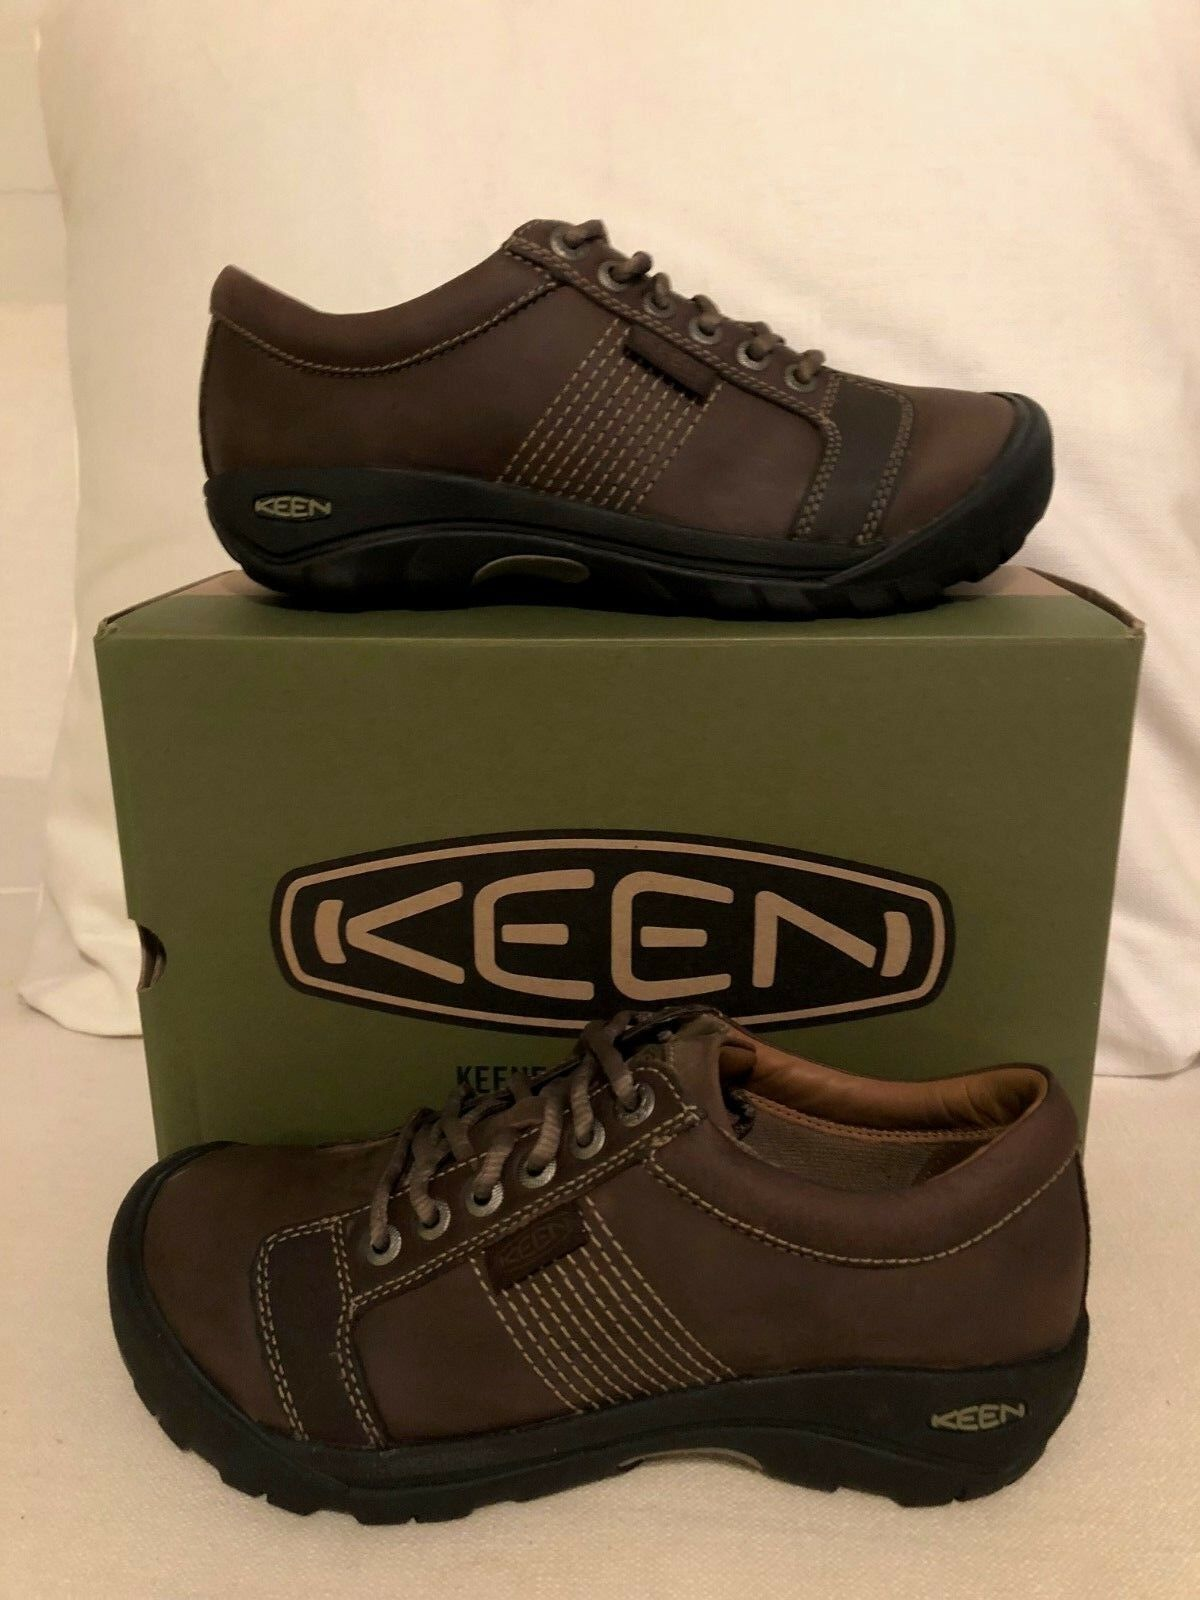 Keen Austin Chocolate Brown Shoes Loafers Men's sizes 7-17 NEW!!!